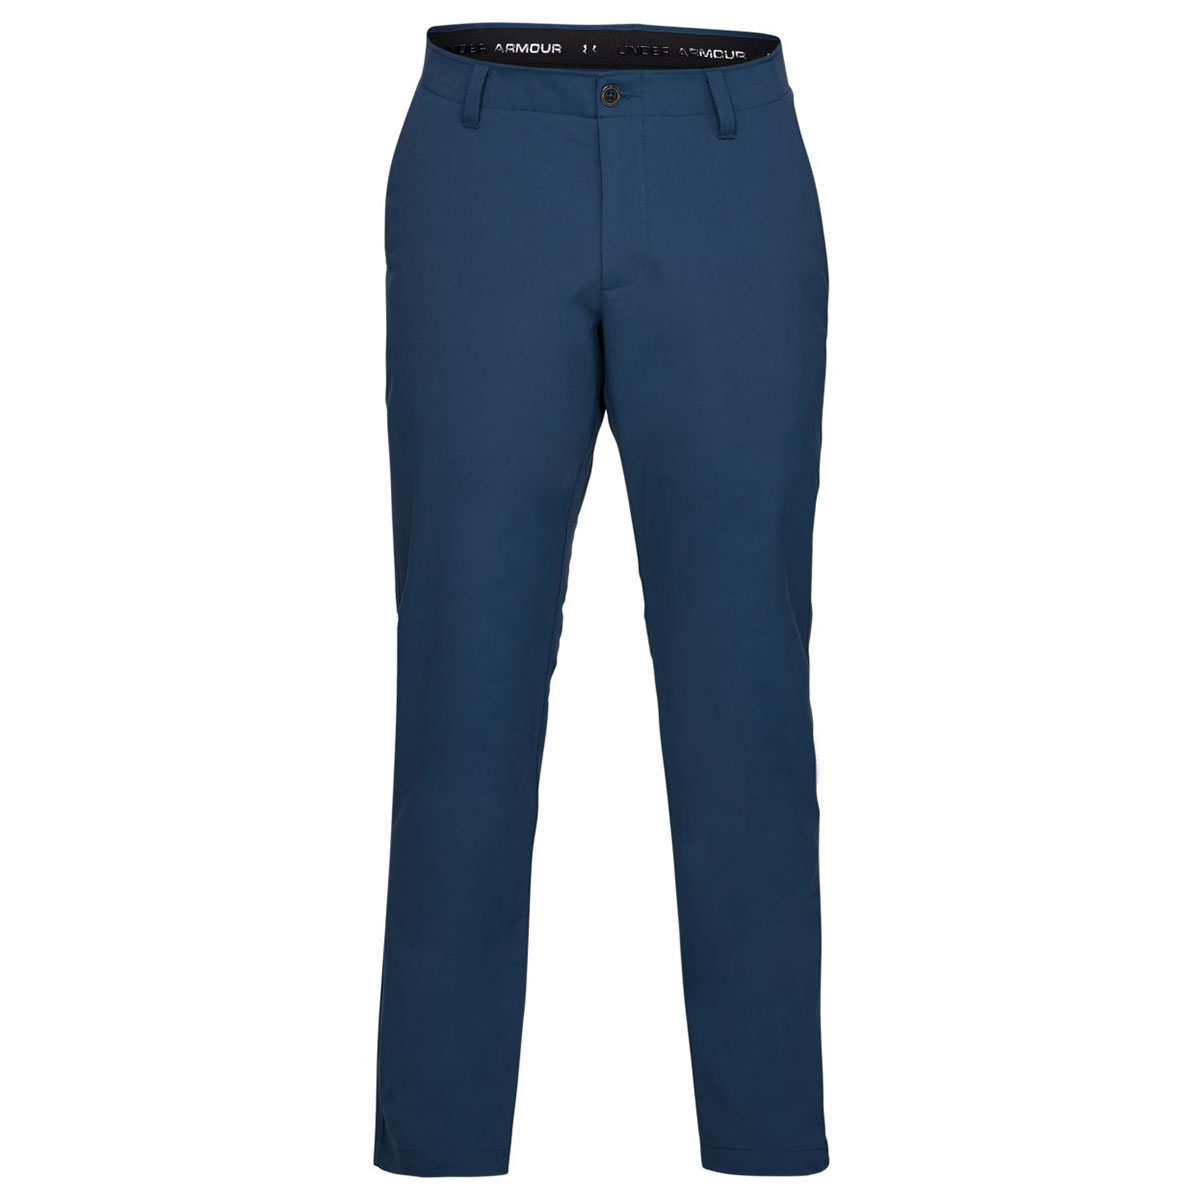 Under-Armour-Mens-2019-EU-Performance-Slim-Taper-Soft-Stretch-Golf-Trousers thumbnail 16